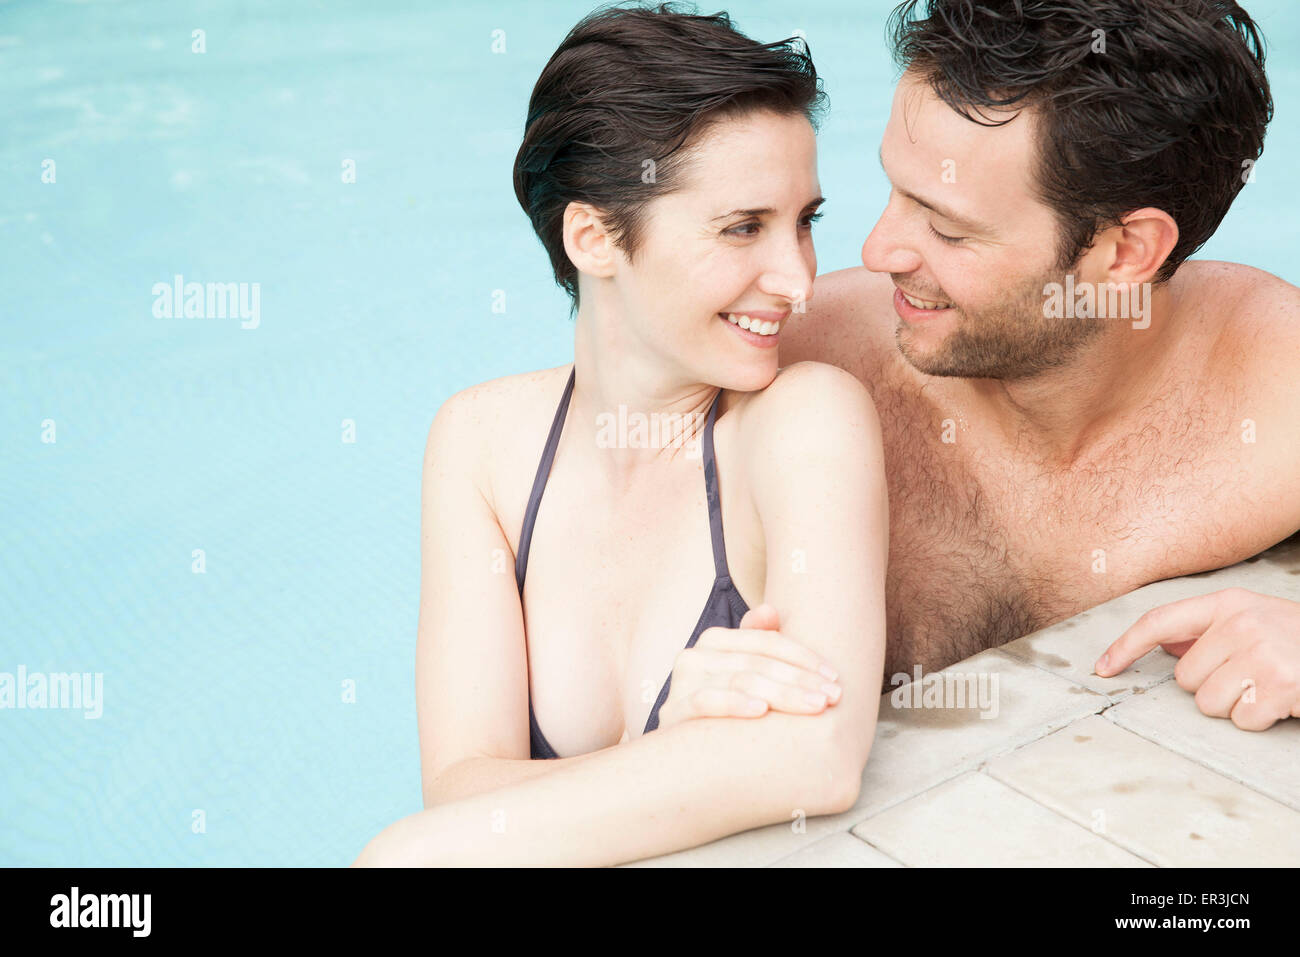 Couple relaxing together in pool - Stock Image